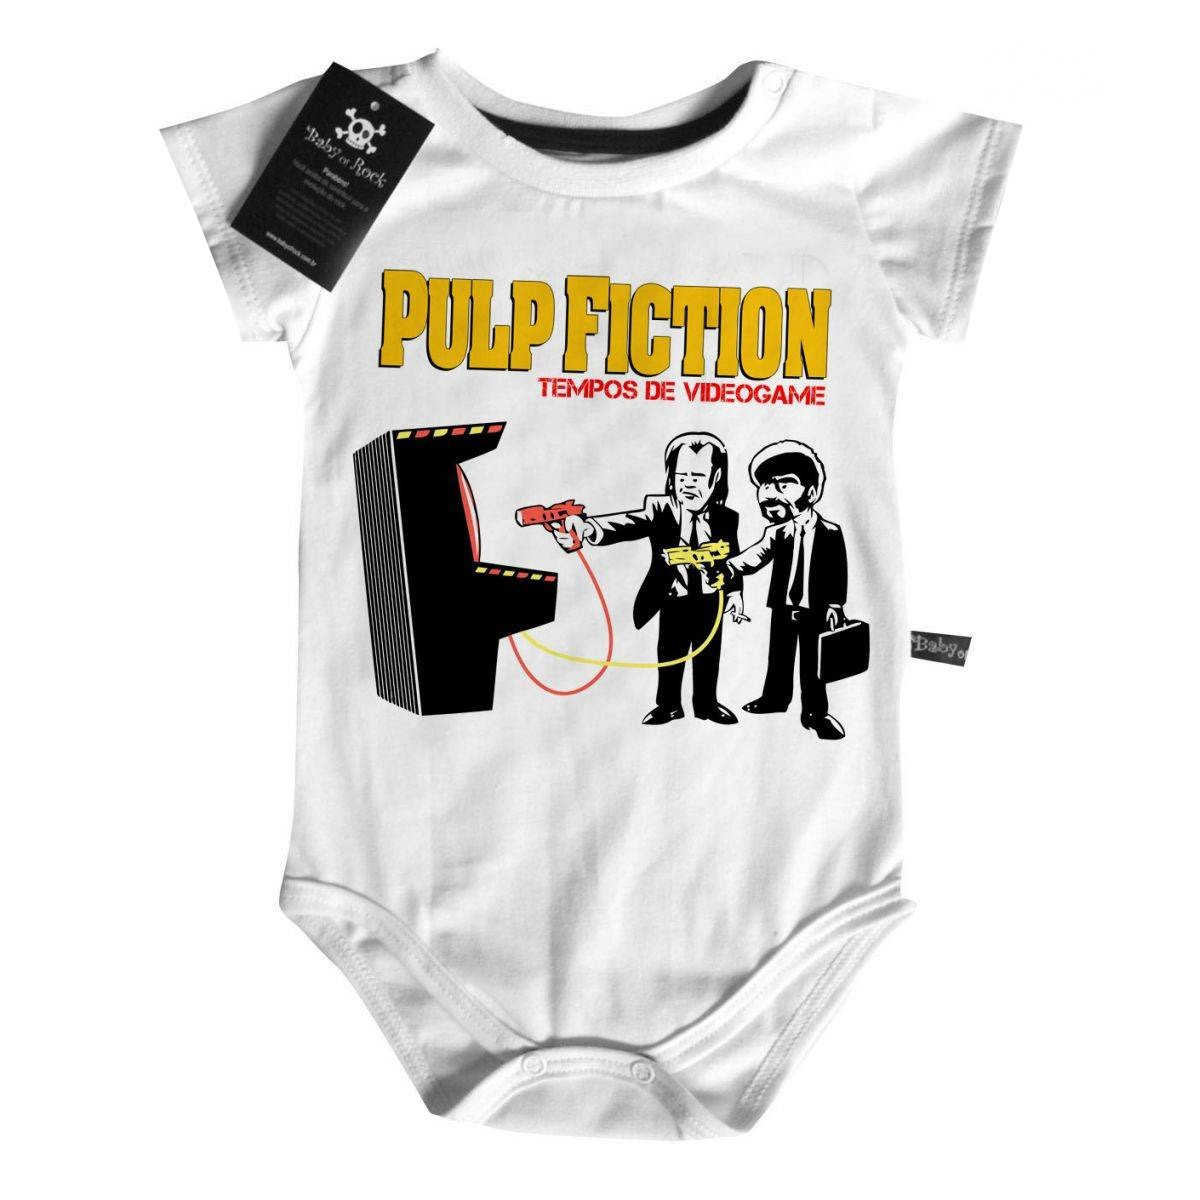 Body Bebê Pulp Fiction - Tempos de GAME  (Tarantino) - White  - Baby Monster S/A